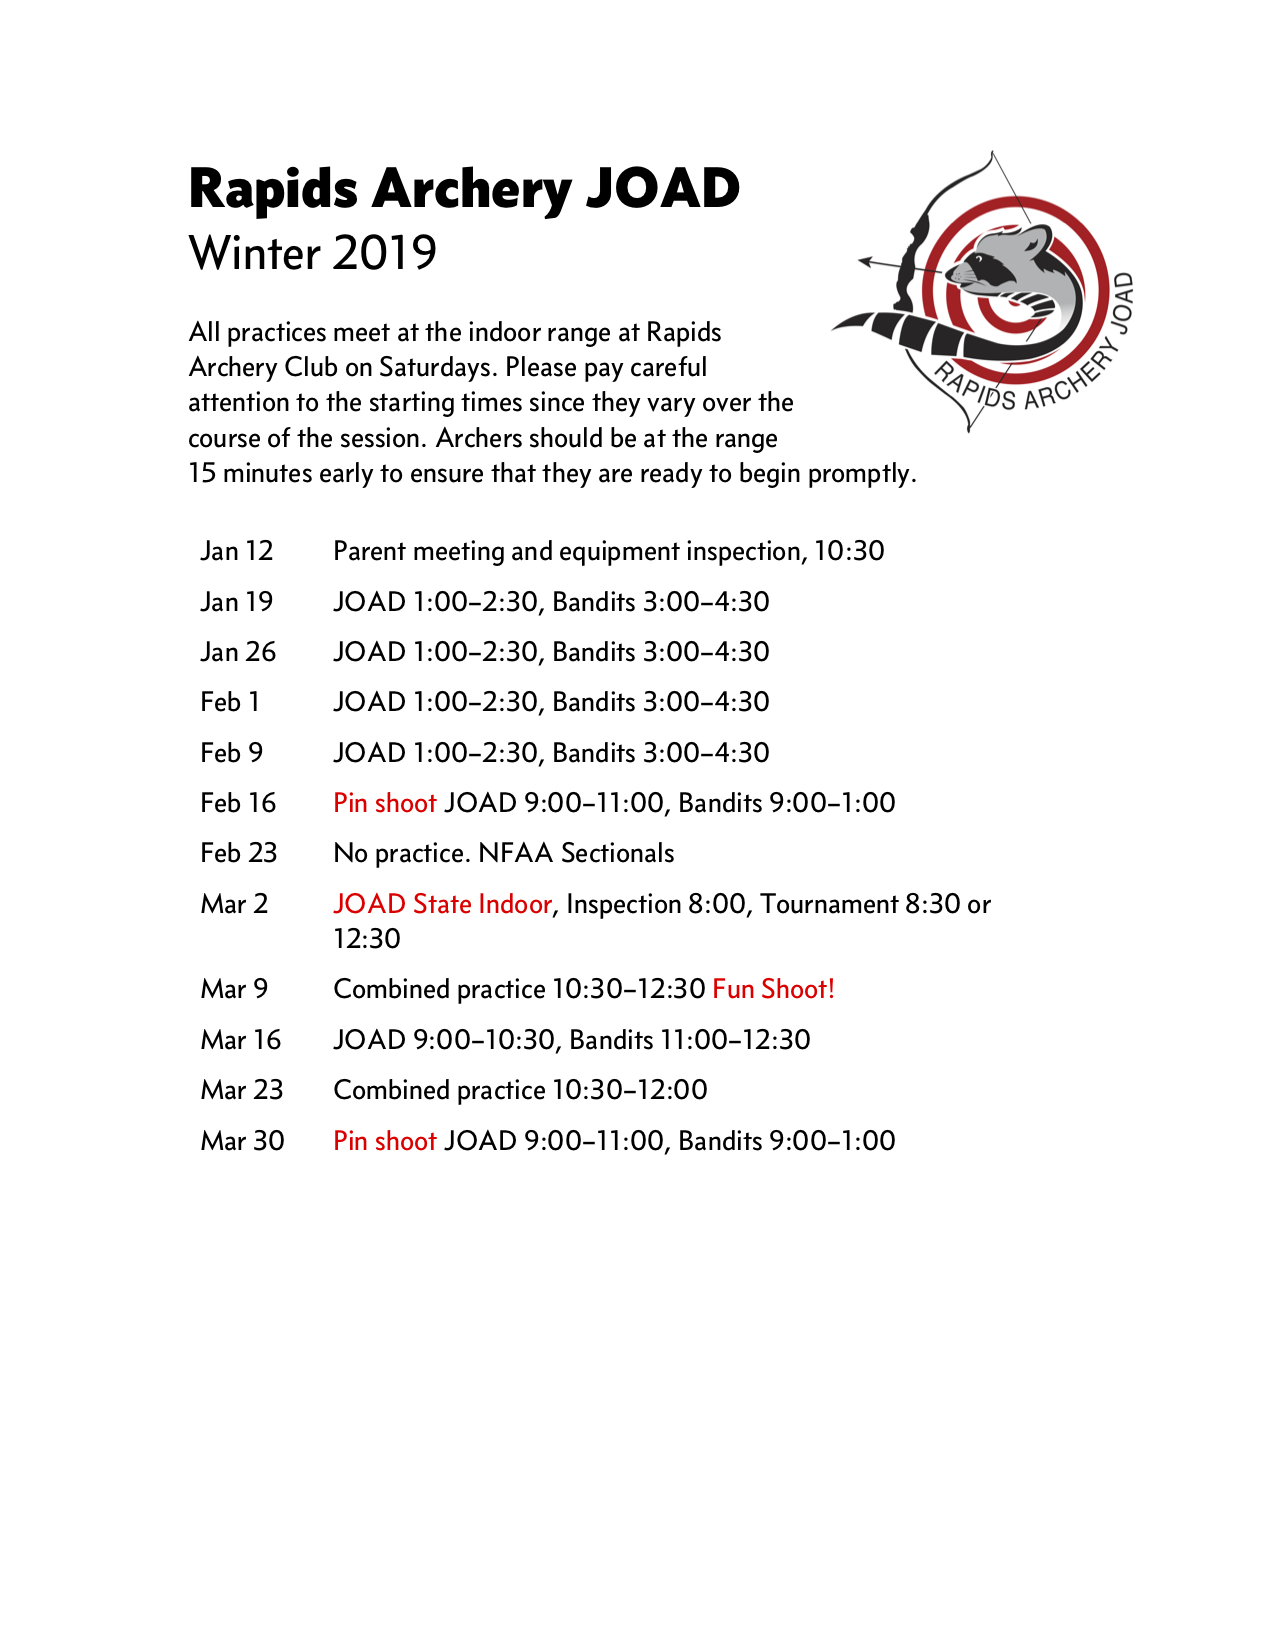 Rapids Archery JOAD winter 2019 schedule.png